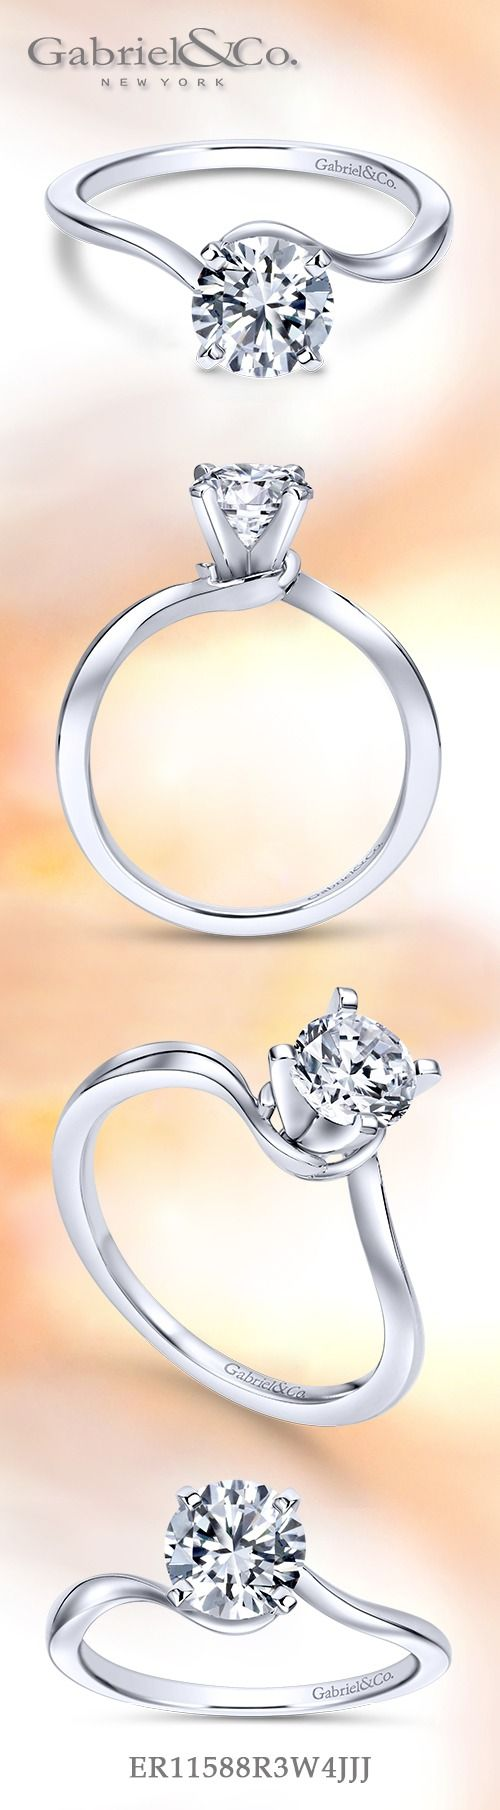 Gabriel & Co. - Voted #1 Most Preferred Fine Jewelry and Bridal Brand.  Meet Blair - This chic 14k White Gold Round Solitaire minimalist engagement ring truly lets your center stone shine.